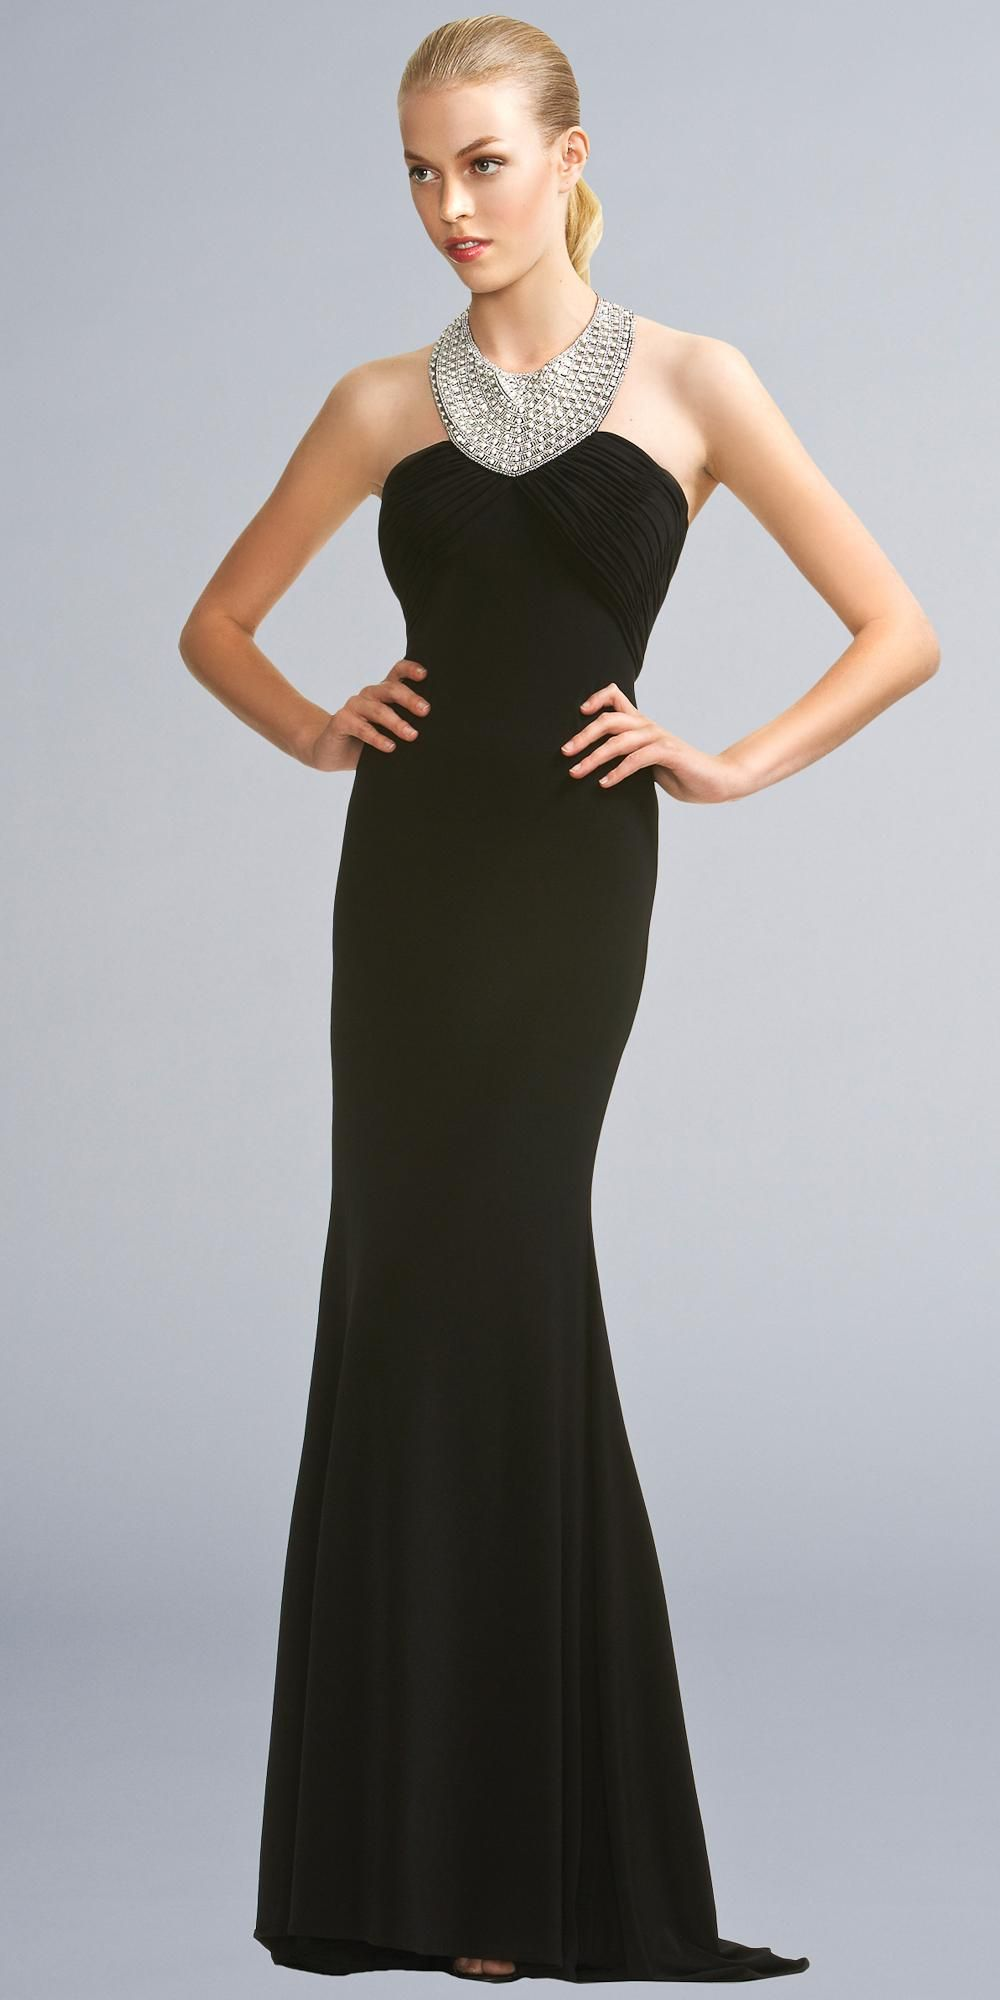 Long Black Evening Gowns | Favorite Places & Spaces | Pinterest ...